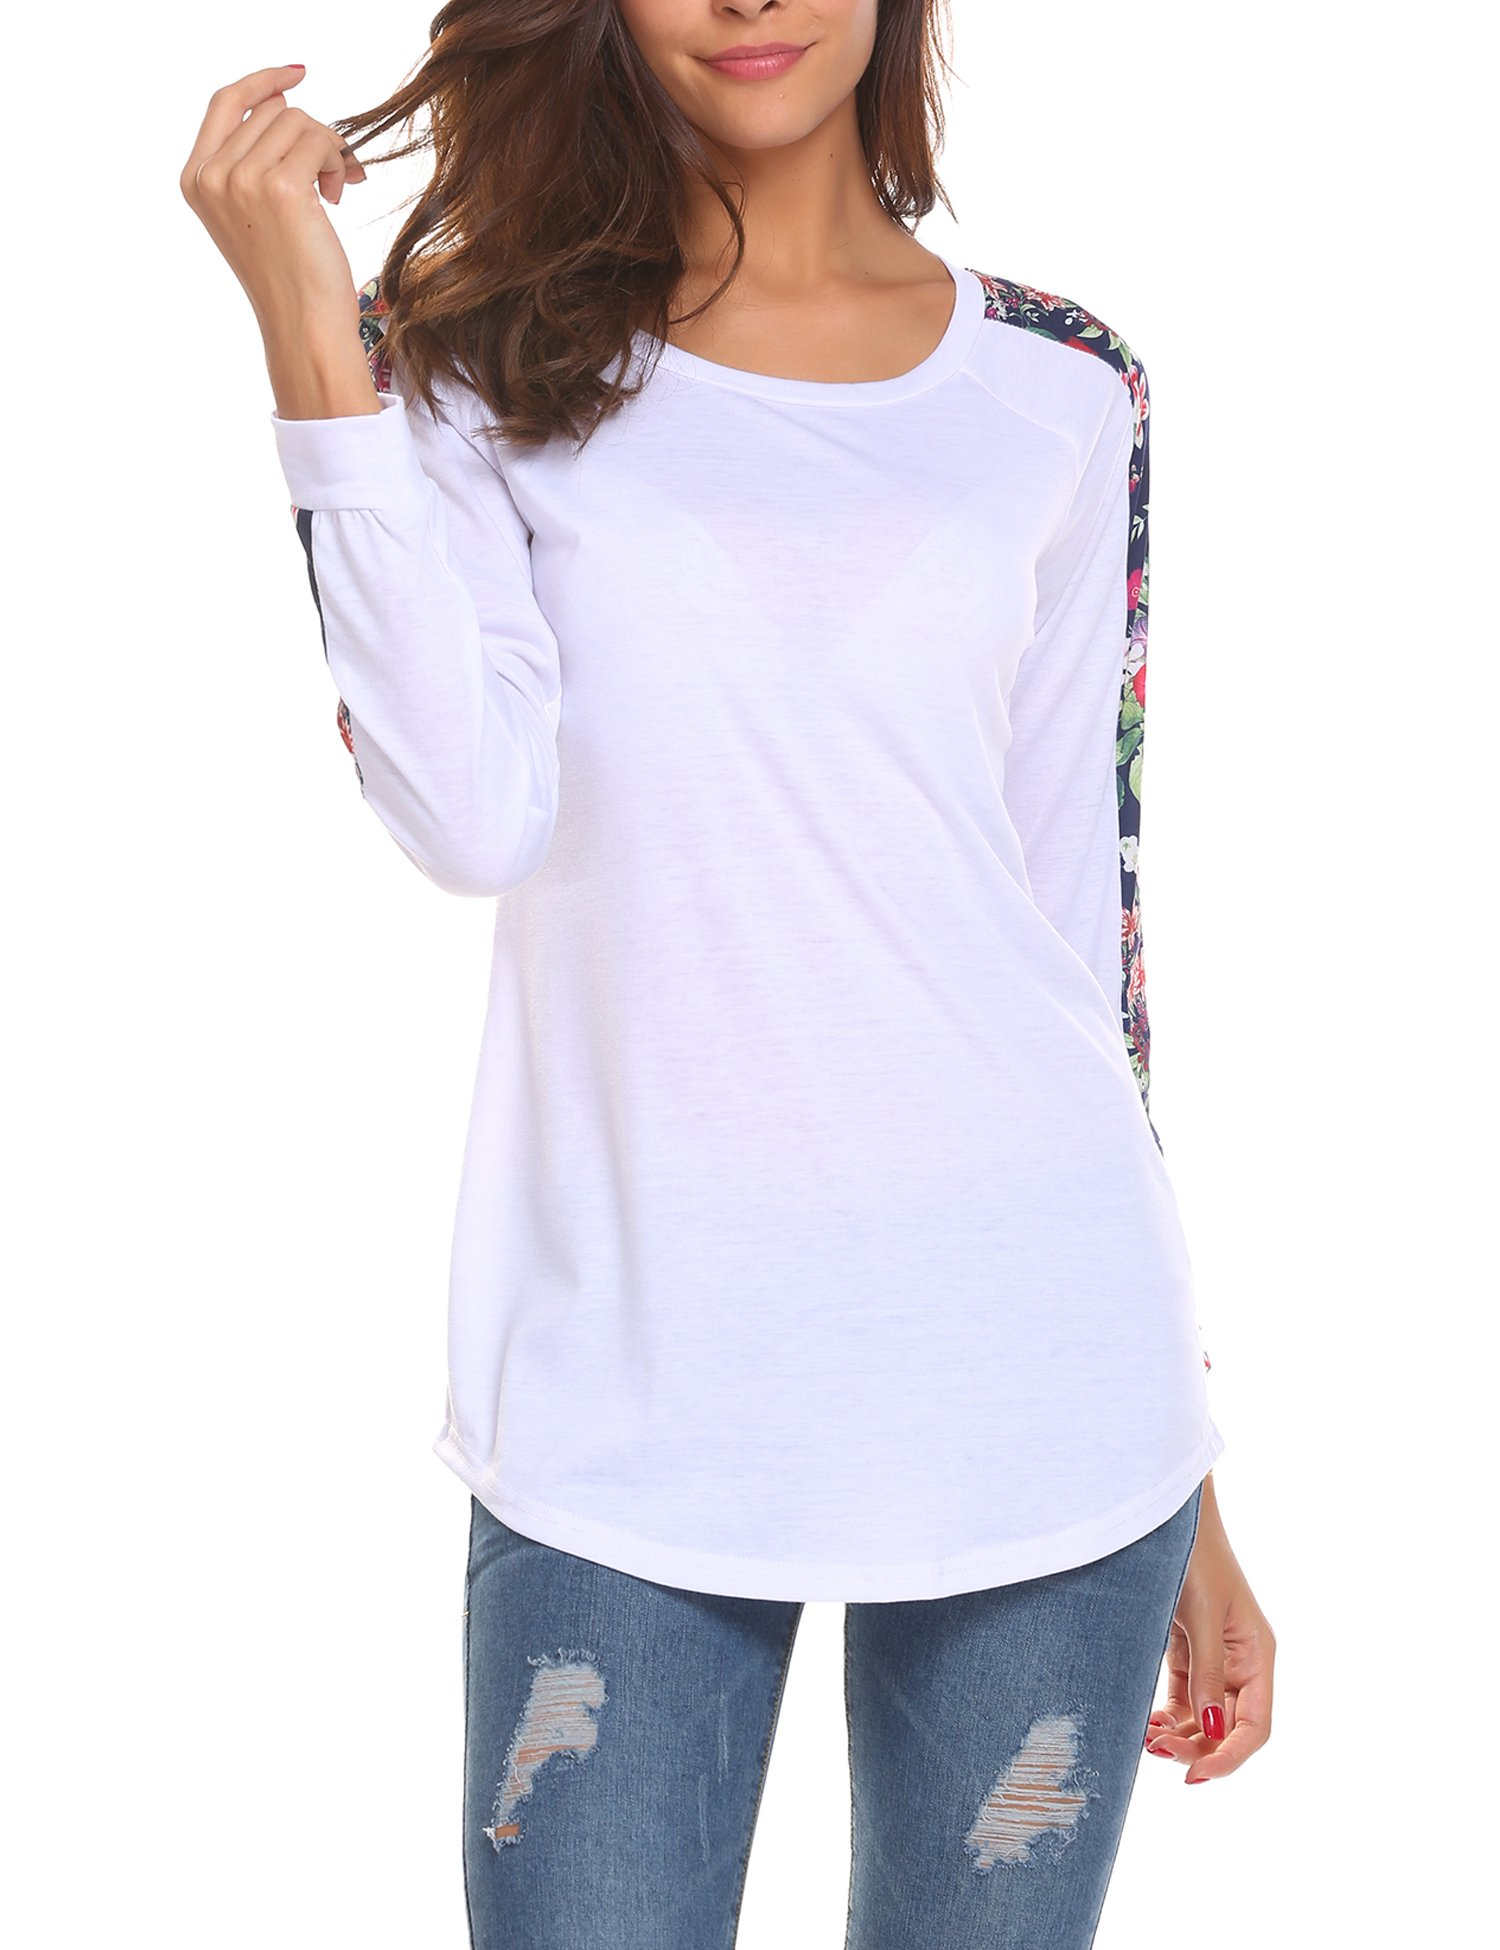 EASTHER Women's Casual Long Sleeve Color Block Floral Print Blouse Tops S-XL